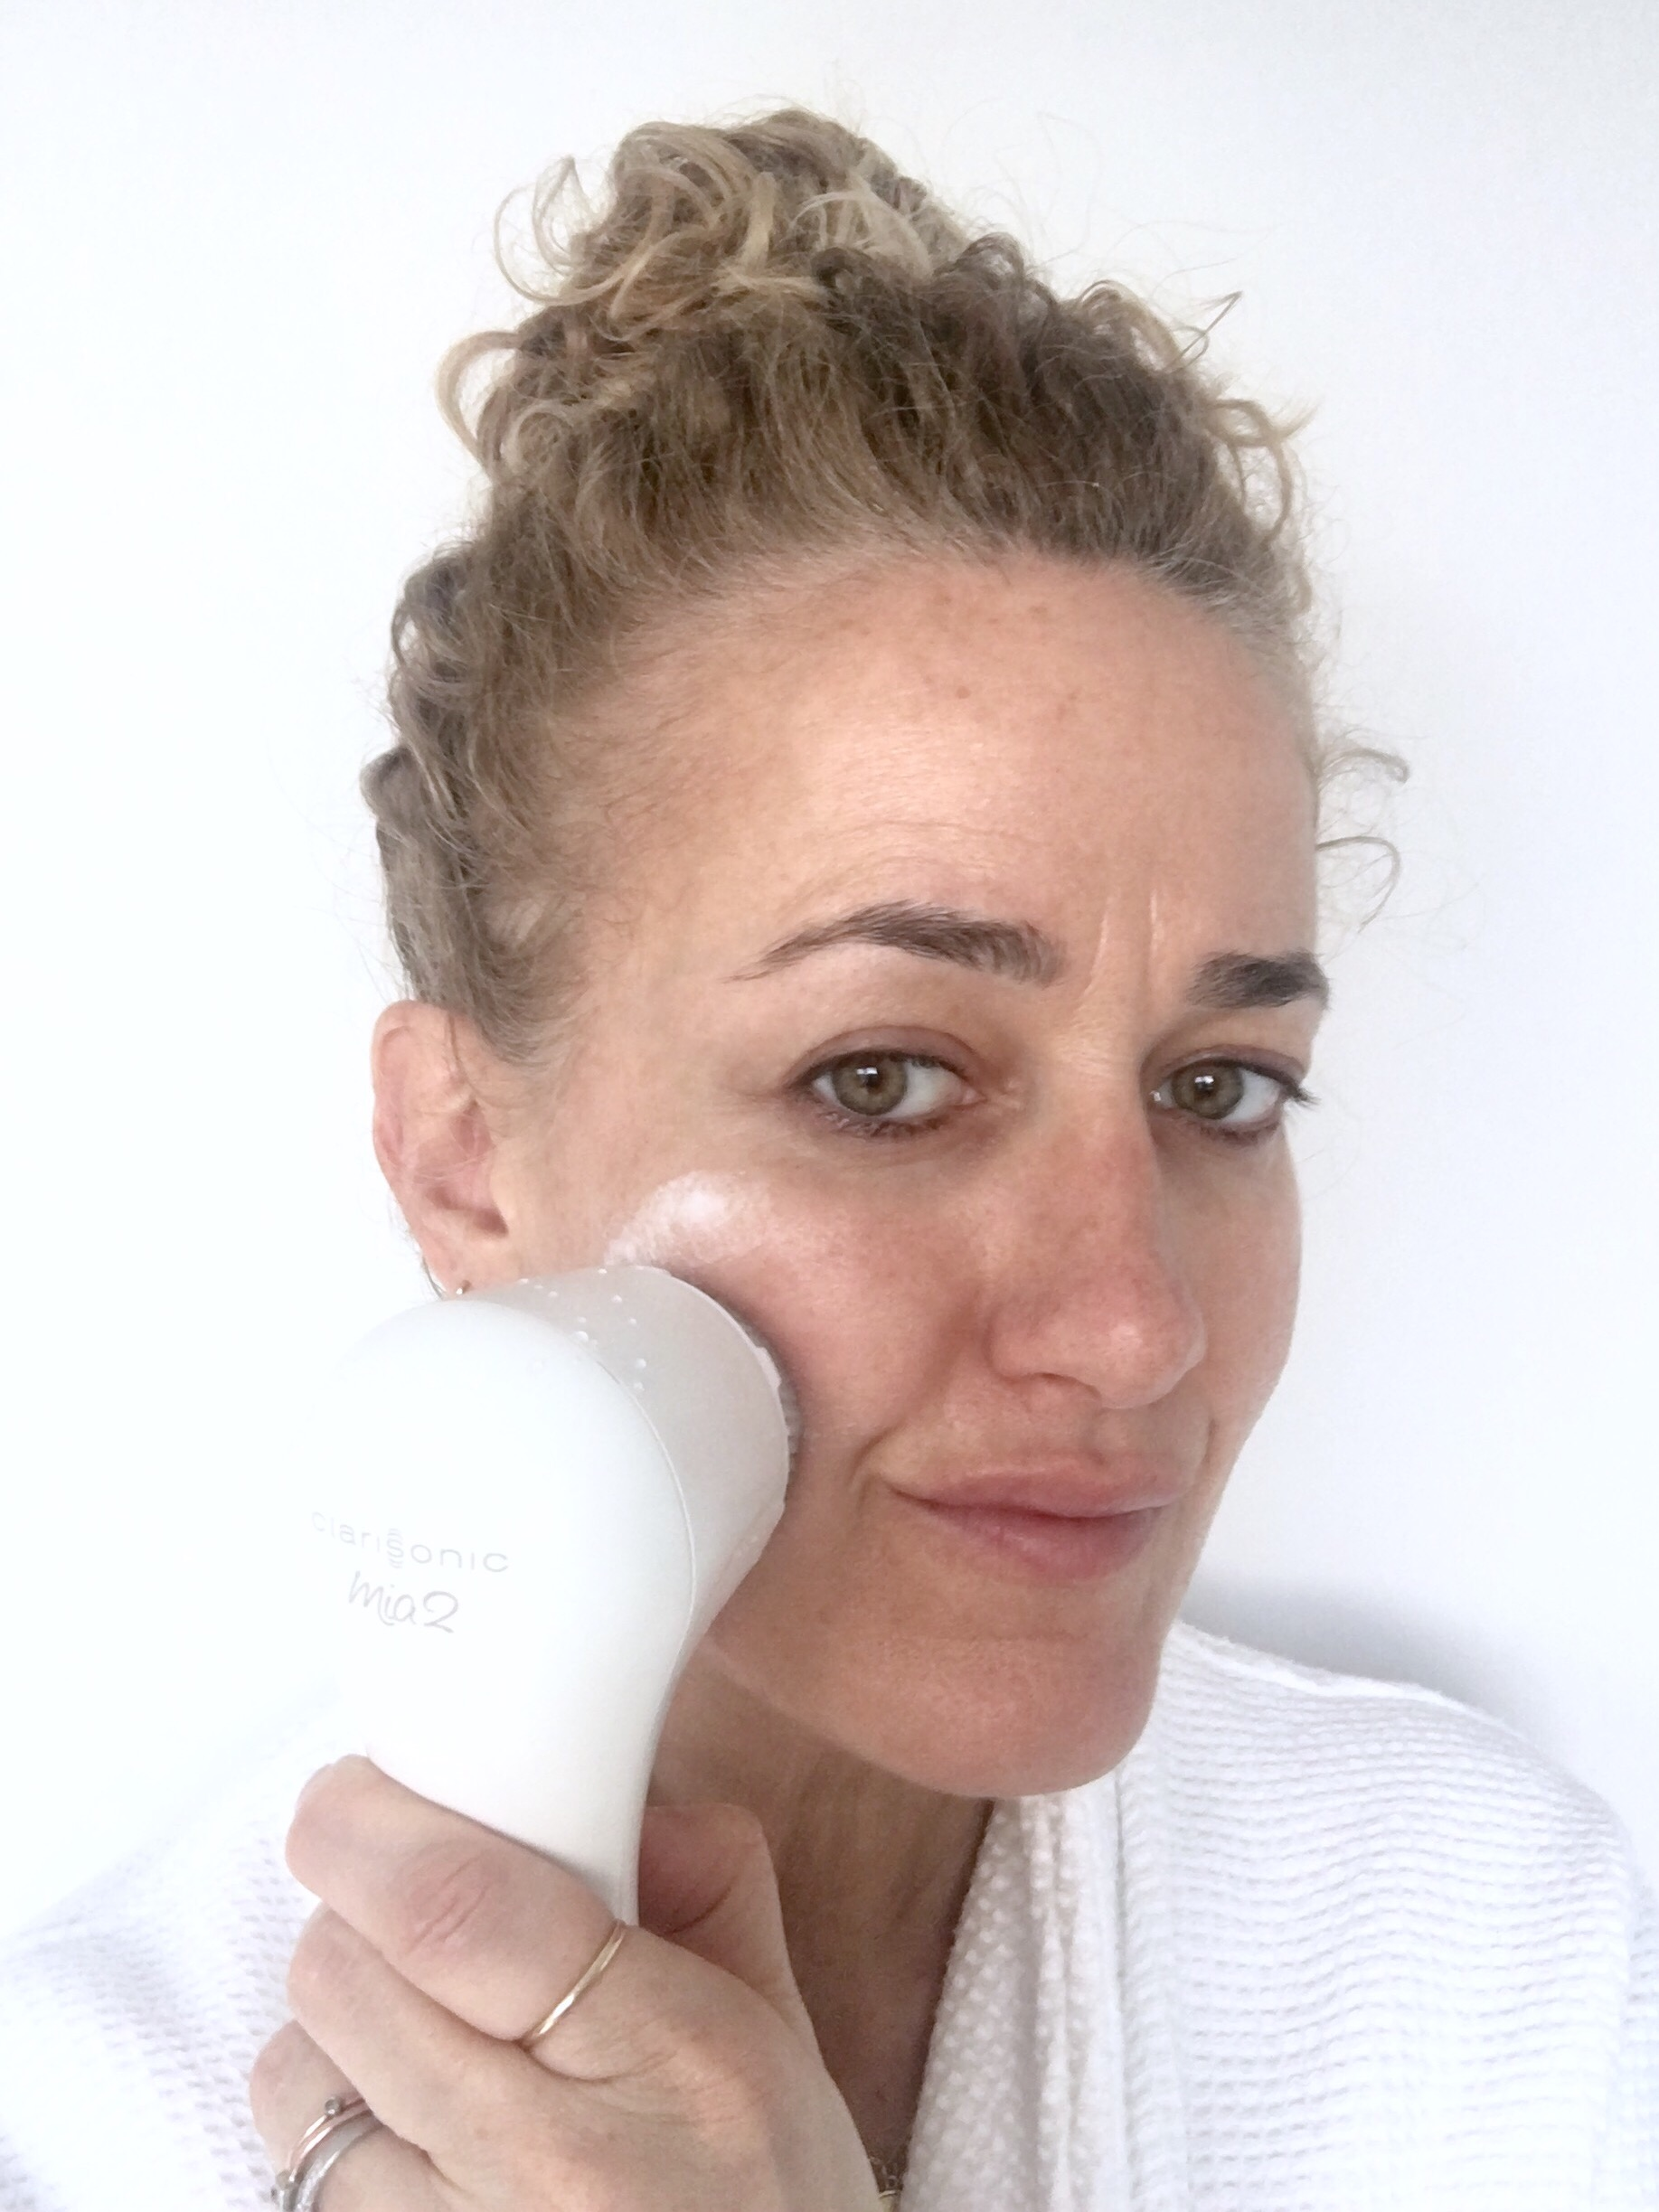 CLARISONIC REVIEW -The Grown Up Edit